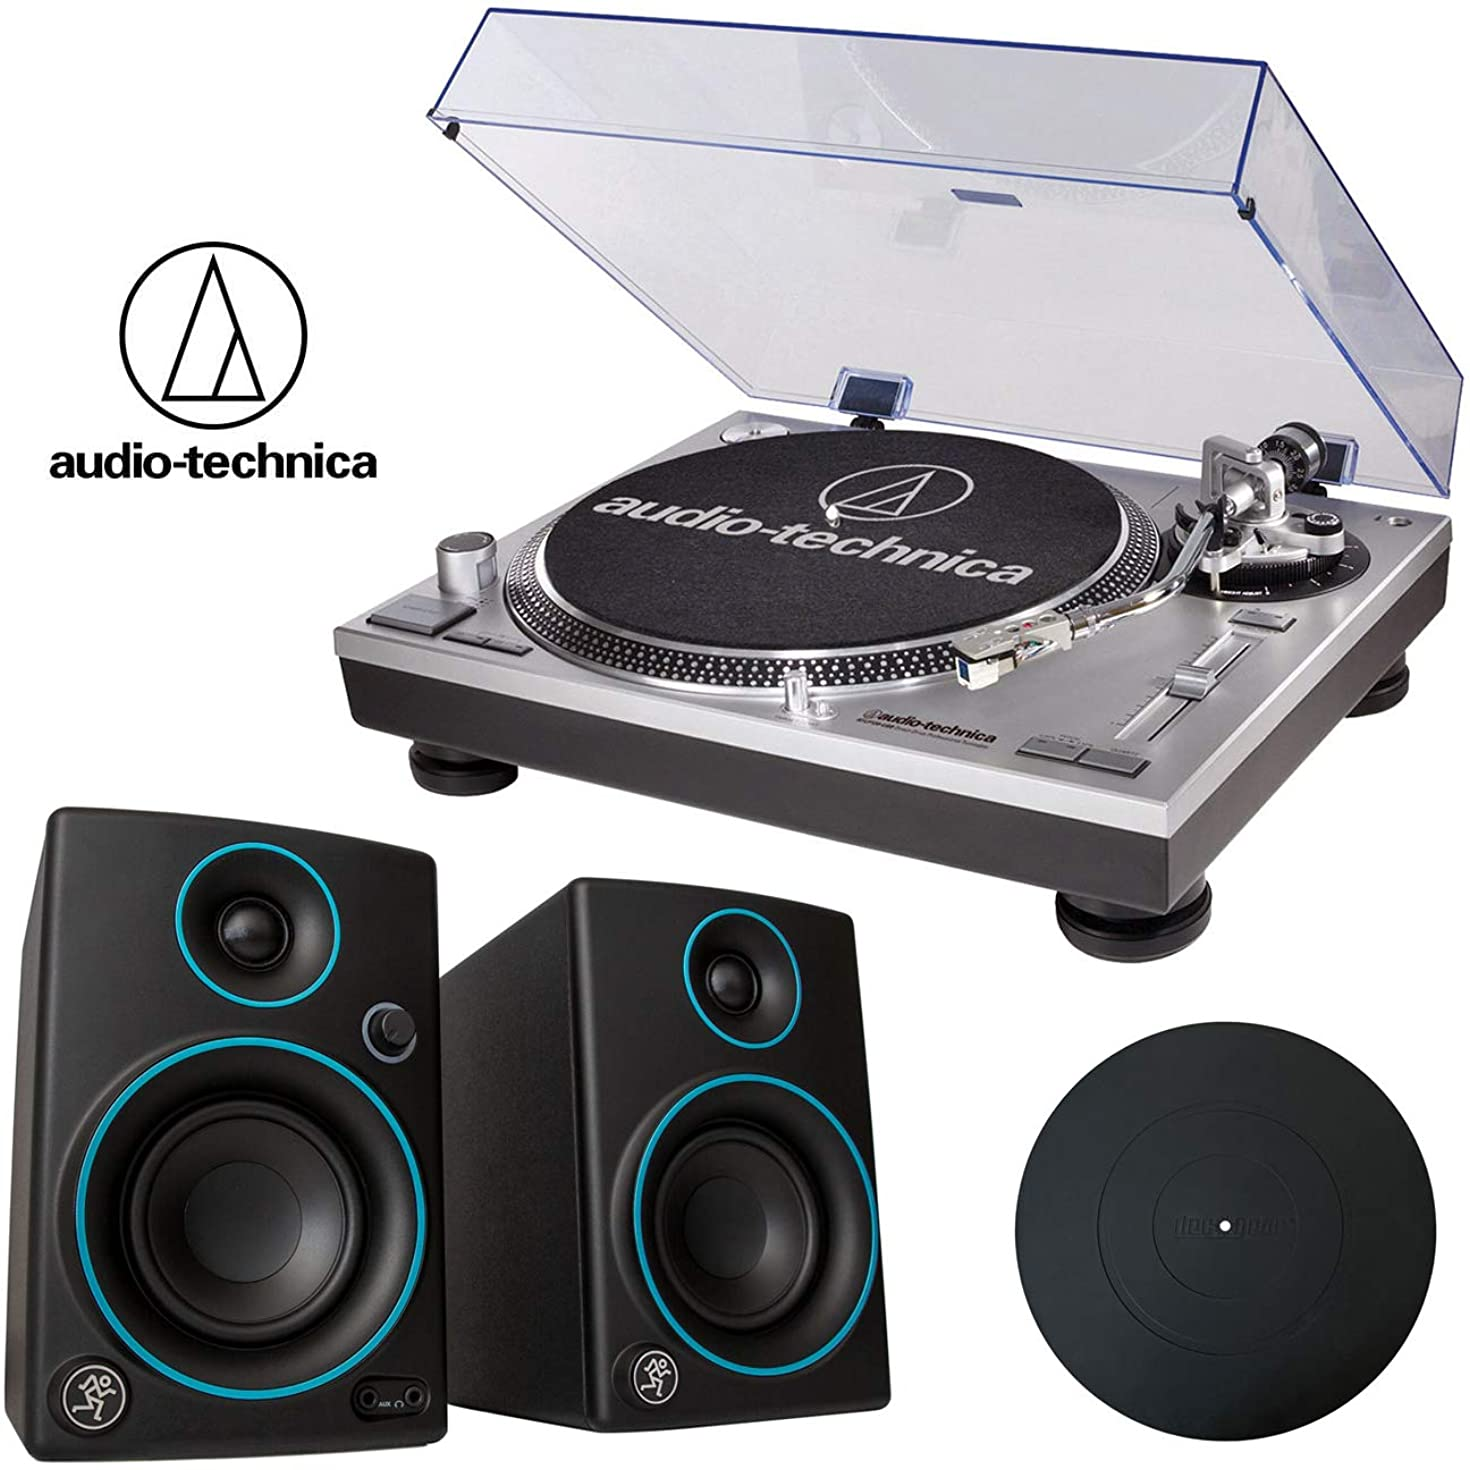 Audio-Technica ATLP120USB Direct-Drive Pro Turntable + Mackie CR3 Blue Speakers + Platter Mat